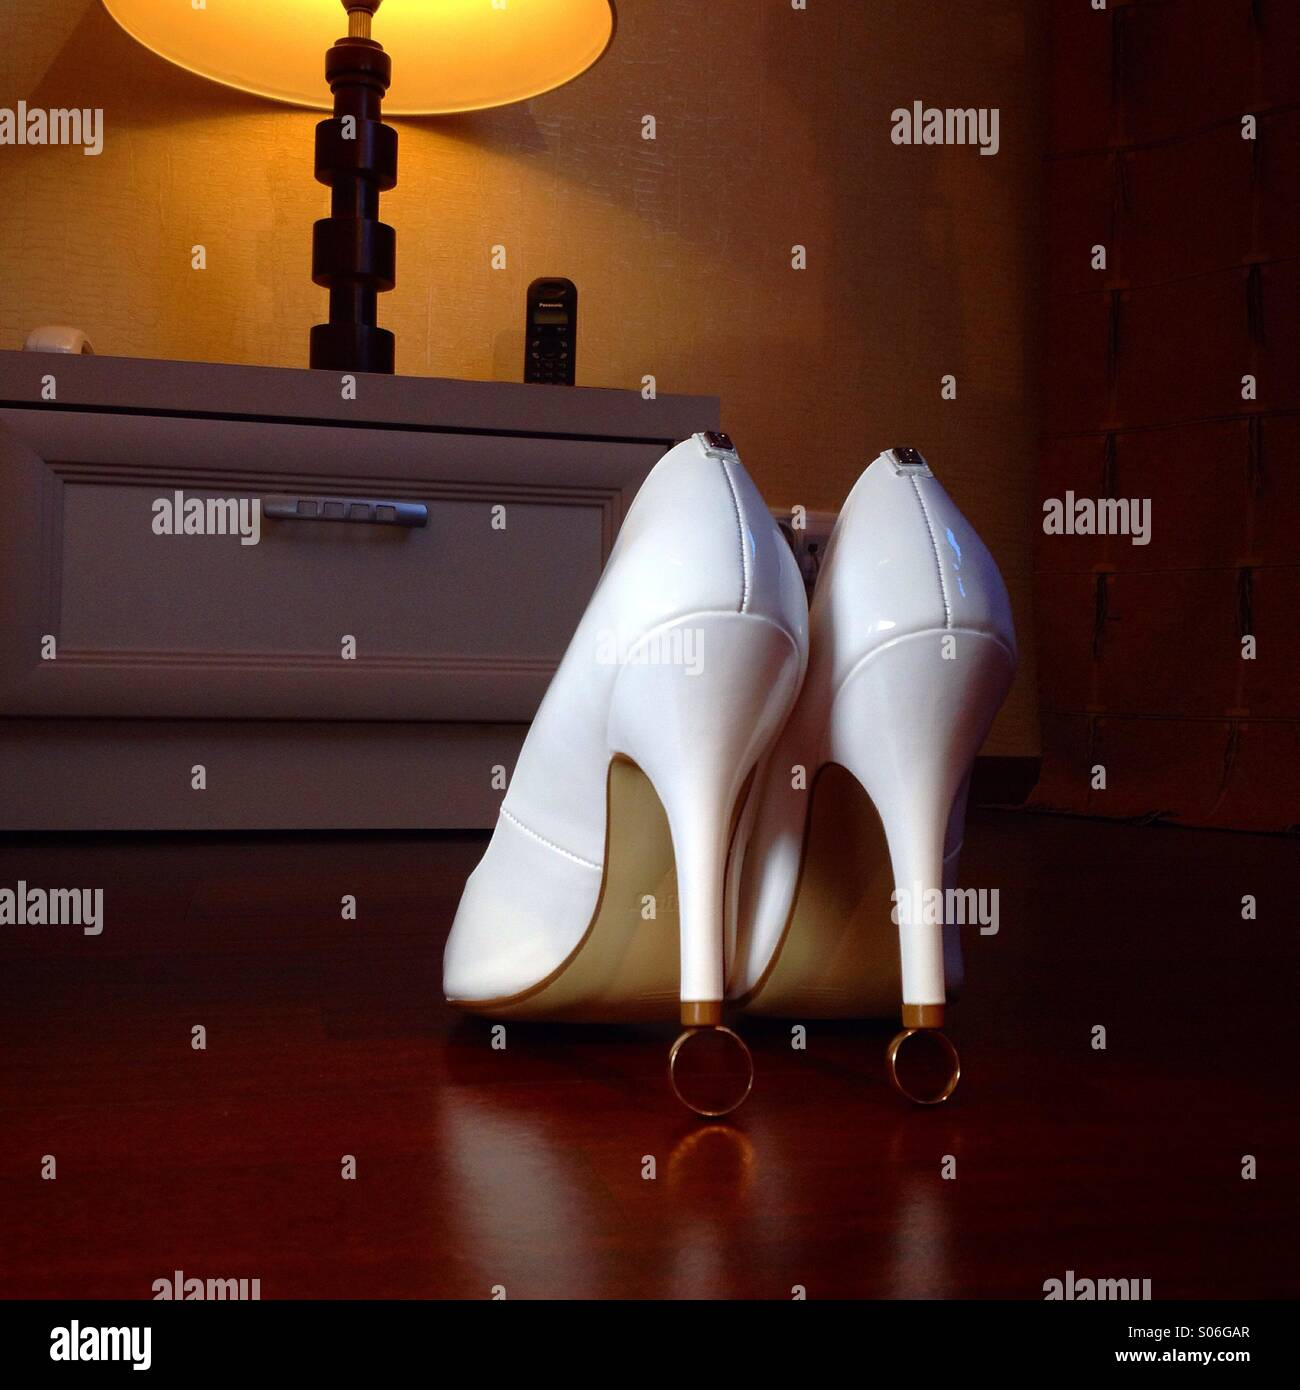 Bride shoes on weddin rings - Stock Image